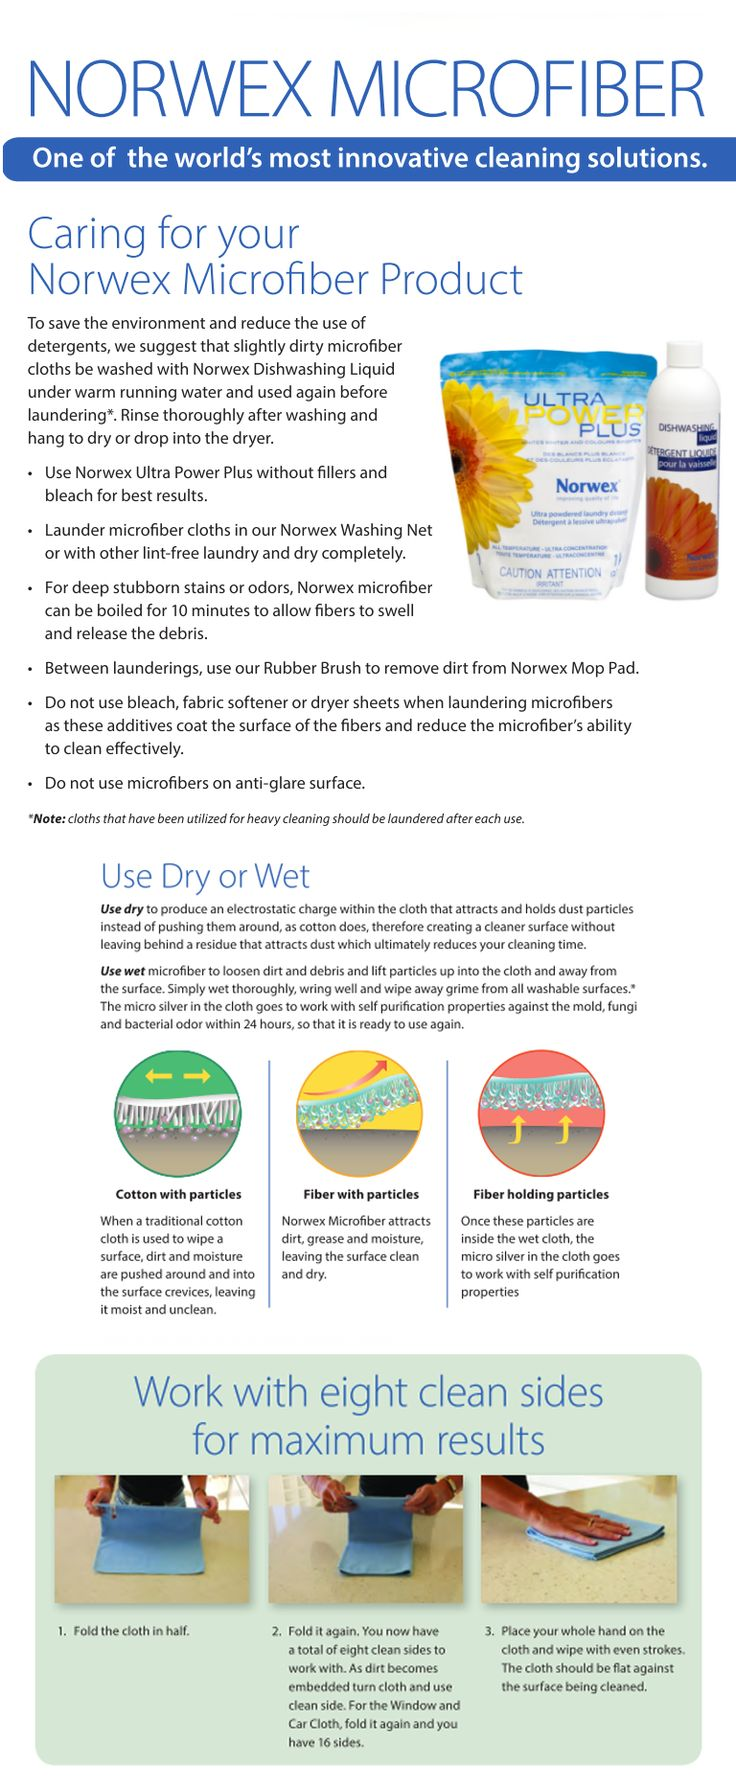 Norwex #microfiber #washing, care and usage instructions